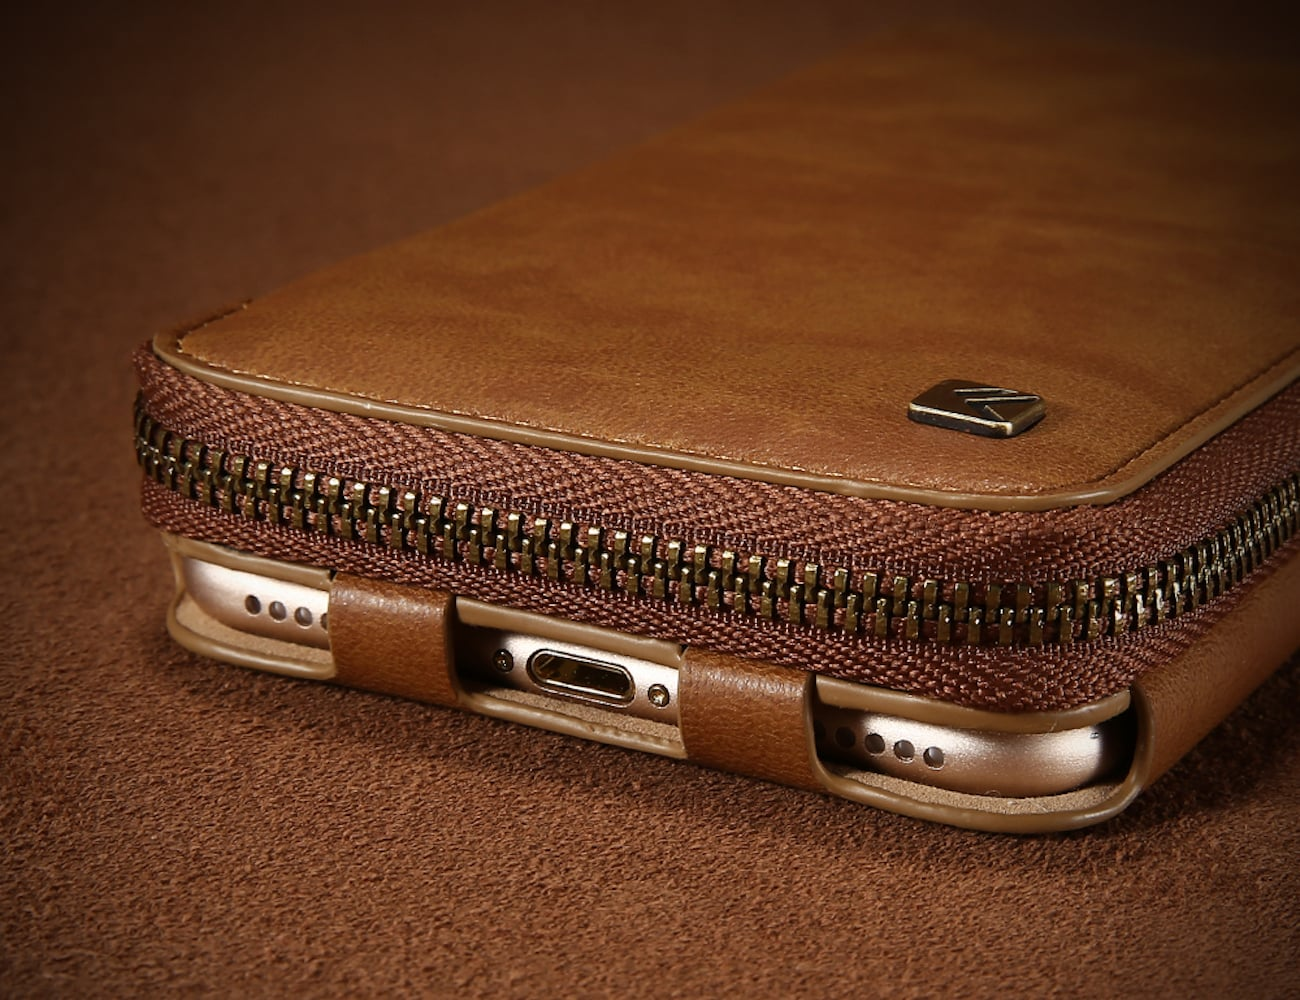 High-Quality iPhone Wallet Case